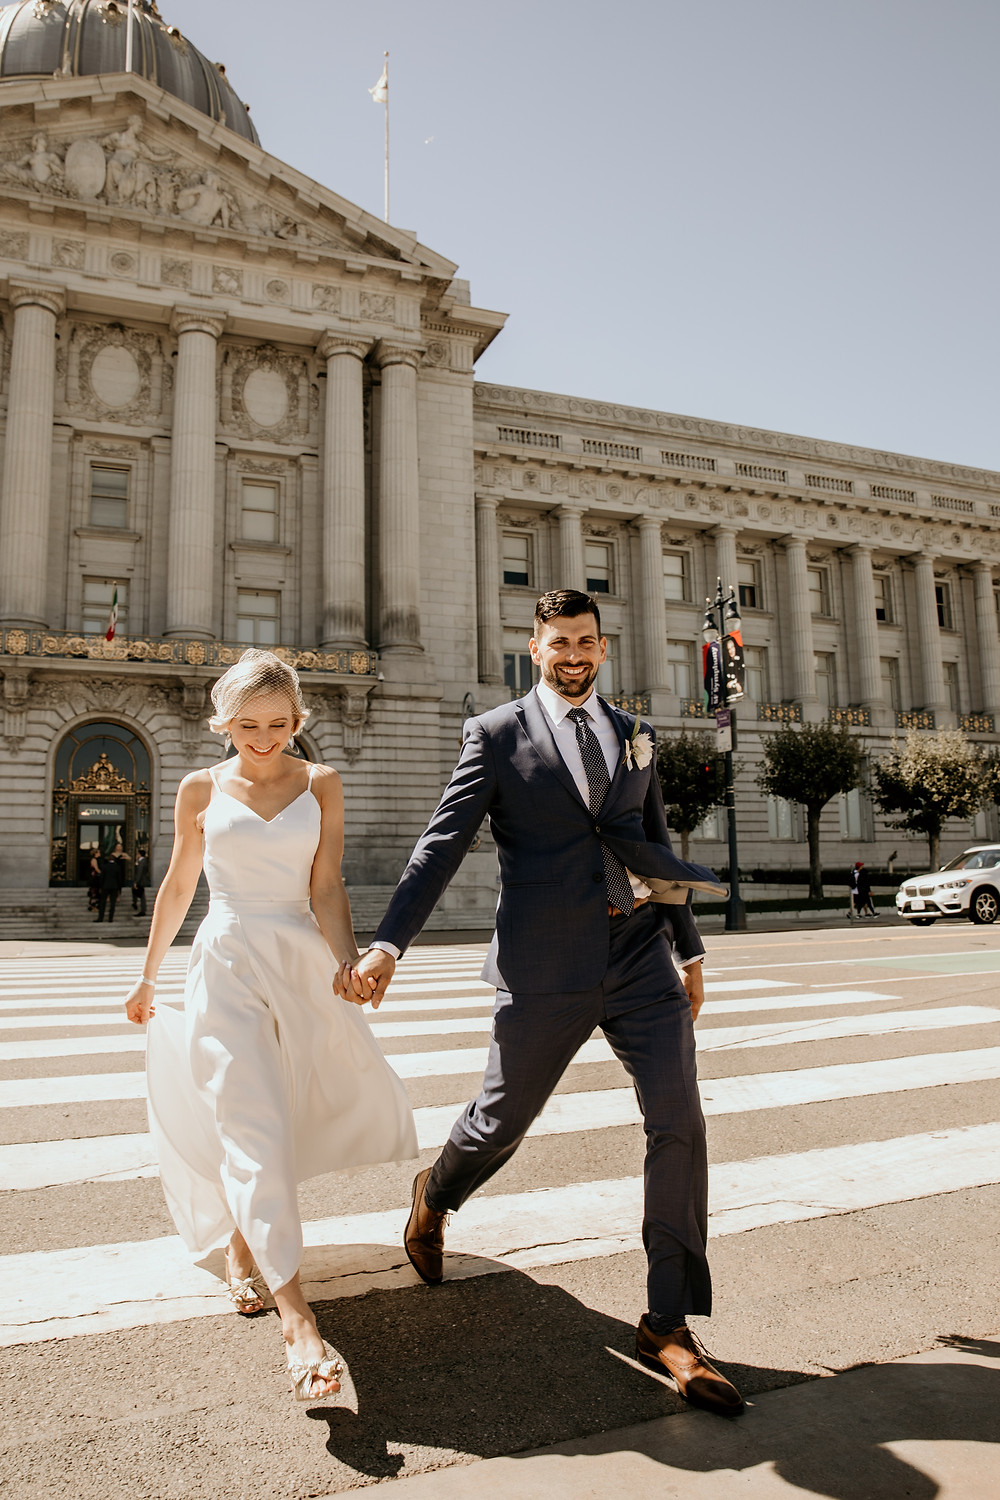 San Francisco wedding planning including industrial wedding details and classic wedding elements.